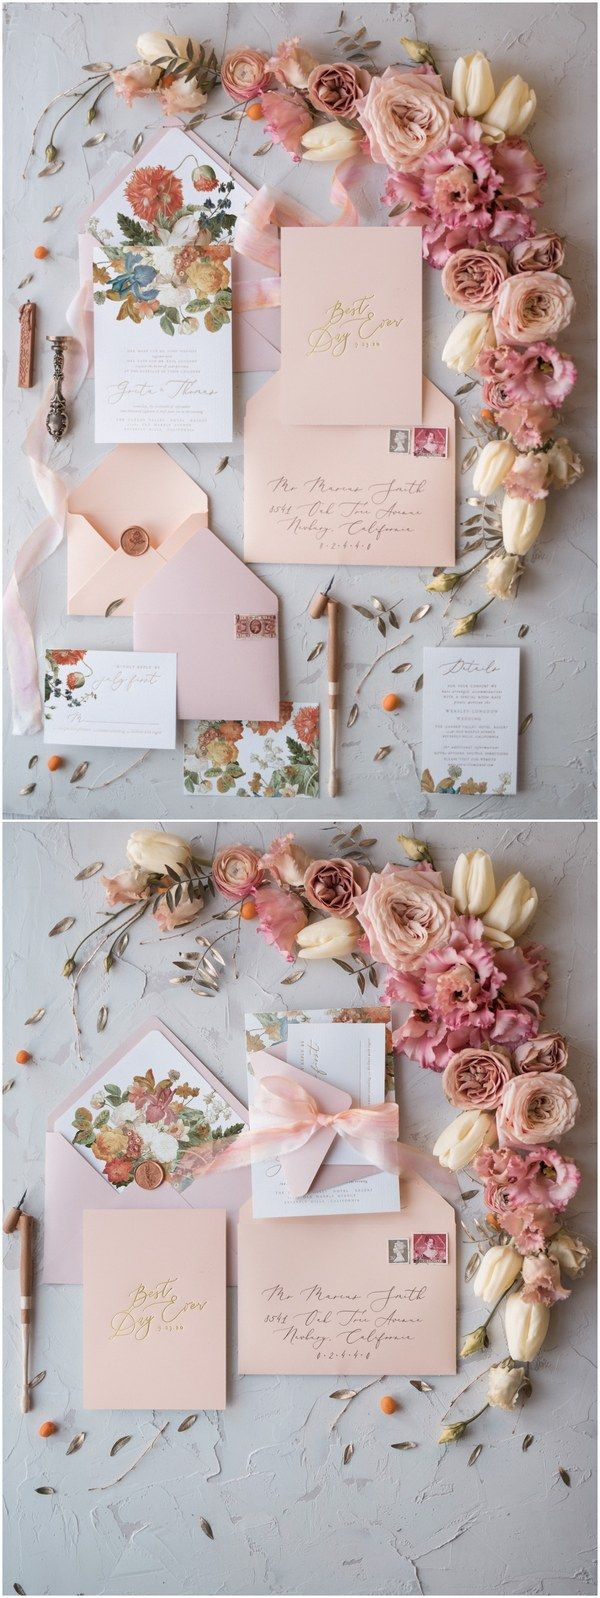 650 Best Wedding Invitations Images On Pinterest Blush Weddings